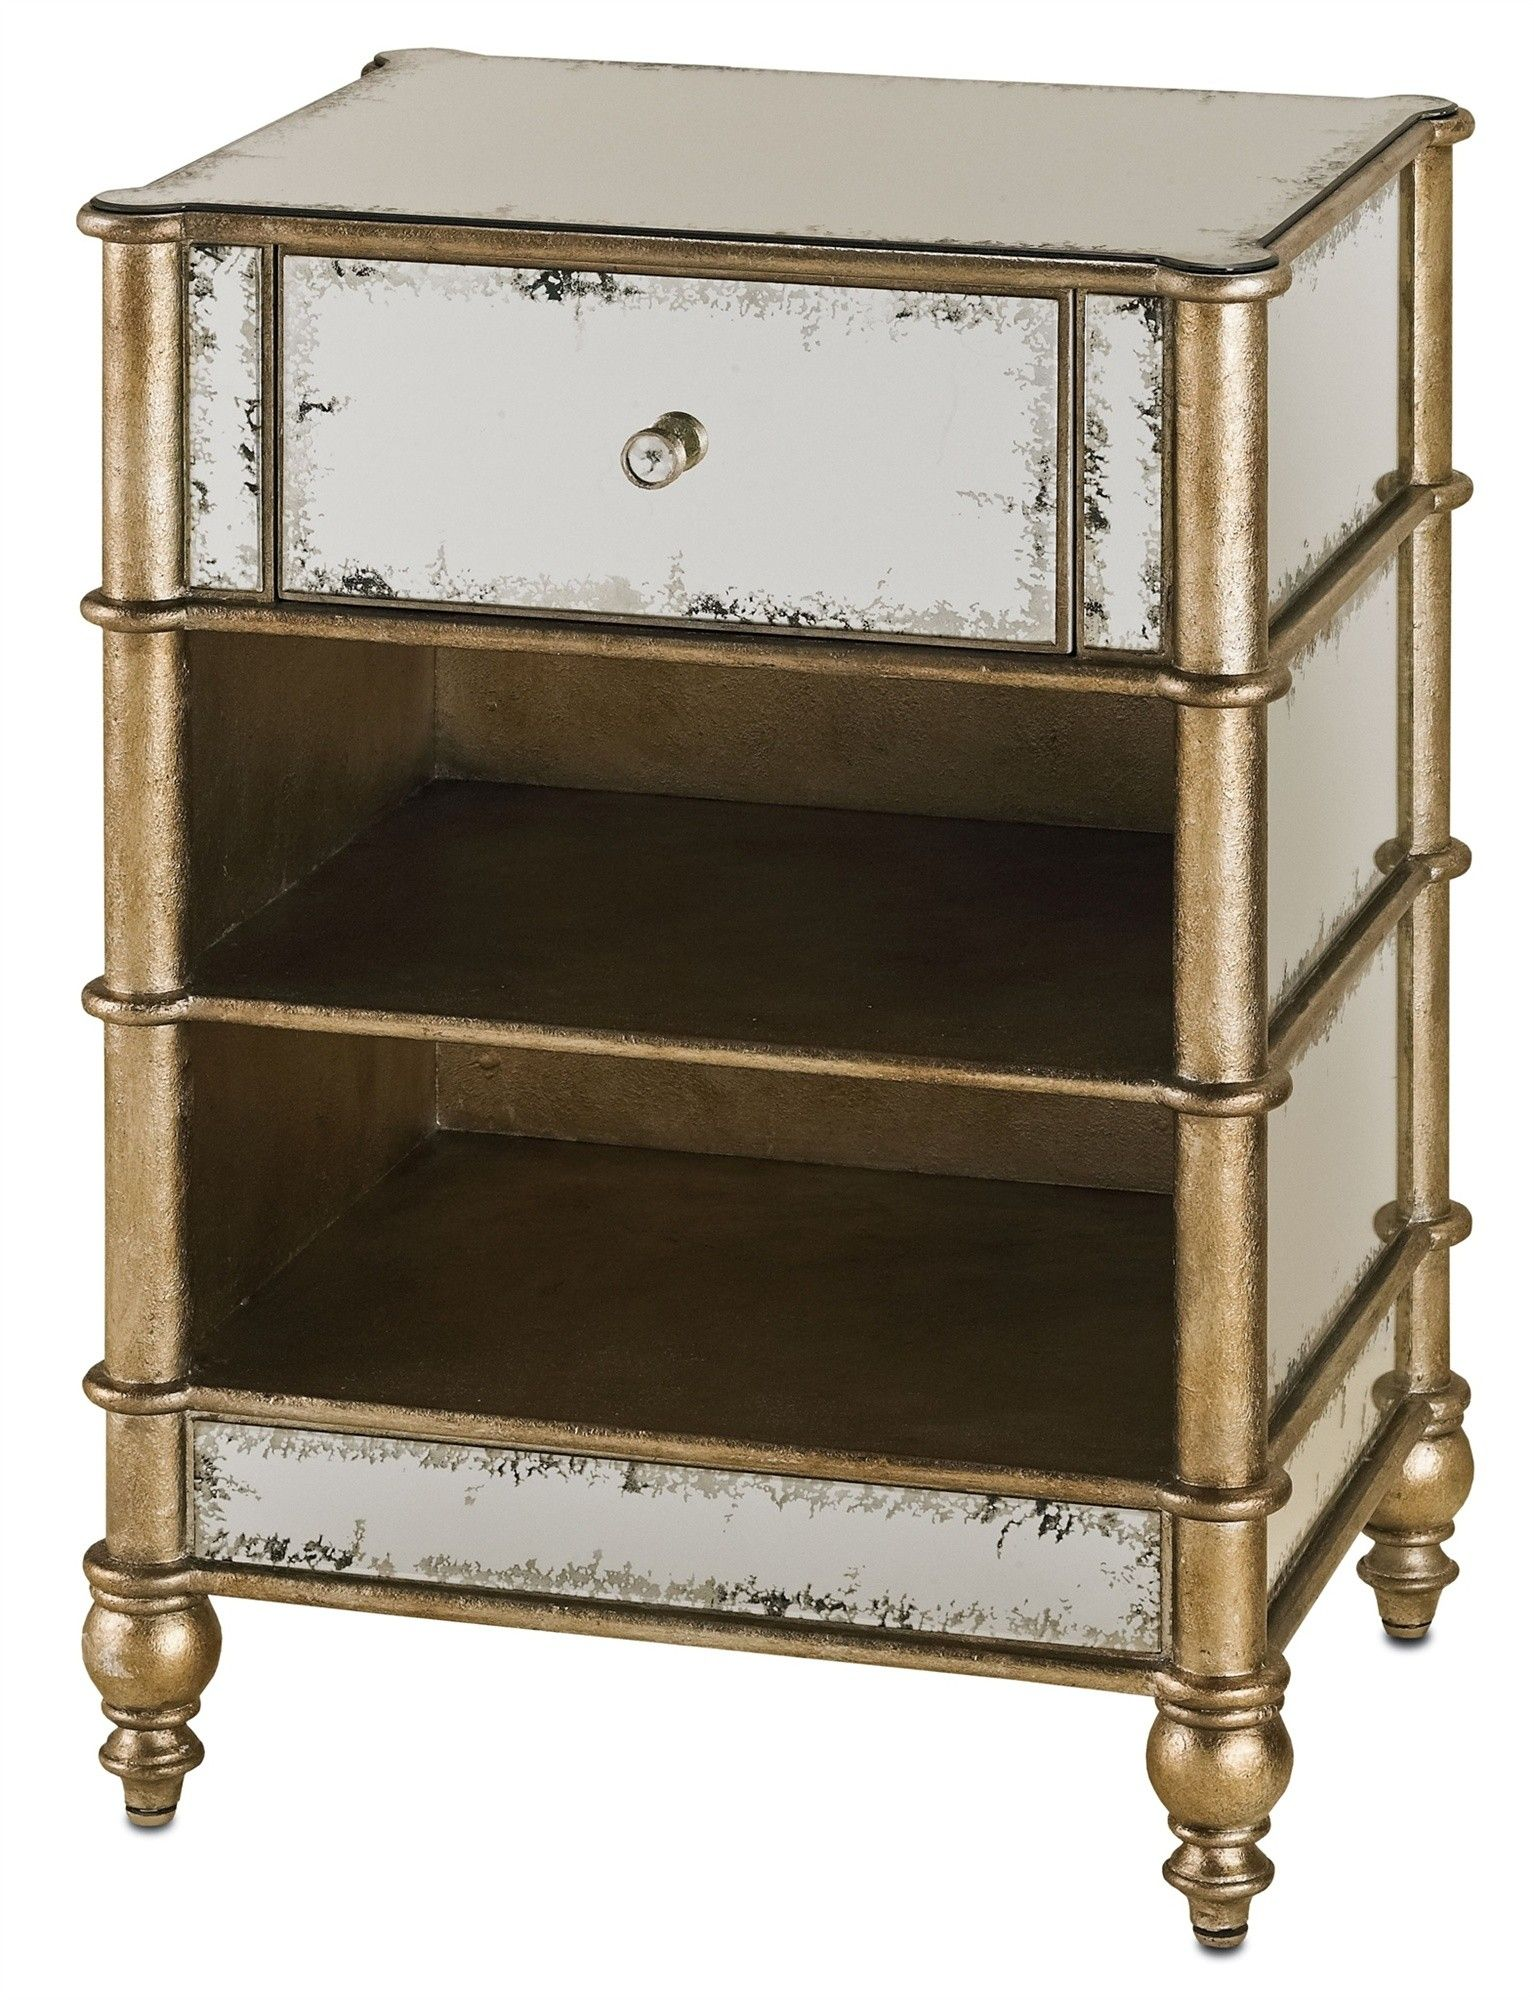 Antiqued Mirror Side Table With Shelves And A Single Drawer ON BACKORDER  UNTIL JANUARY 2015